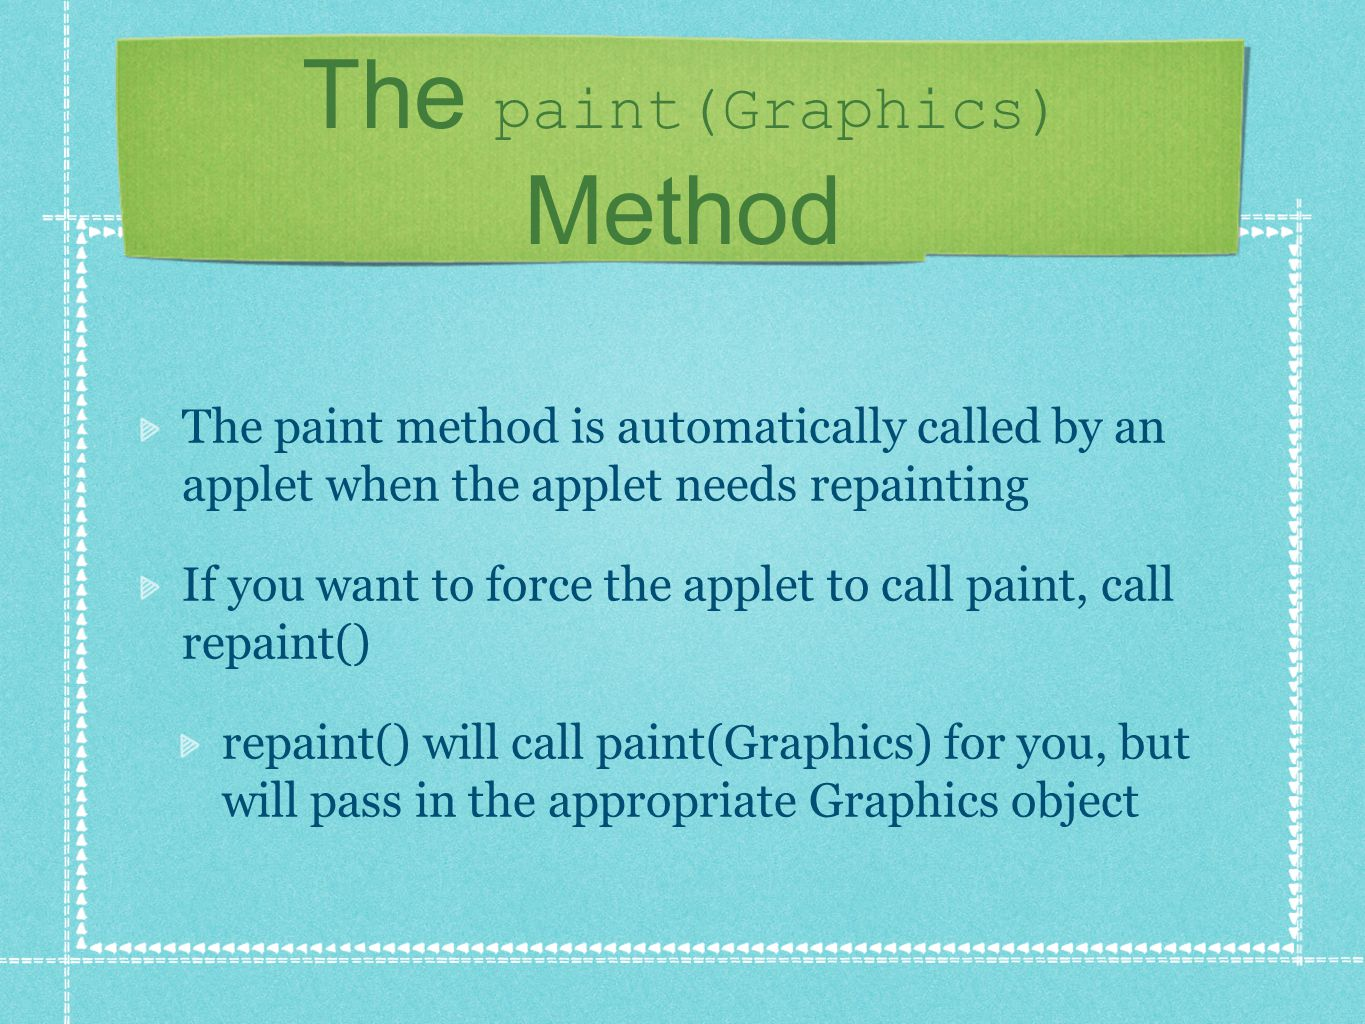 The paint(Graphics) Method The paint method is automatically called by an applet when the applet needs repainting If you want to force the applet to call paint, call repaint() repaint() will call paint(Graphics) for you, but will pass in the appropriate Graphics object